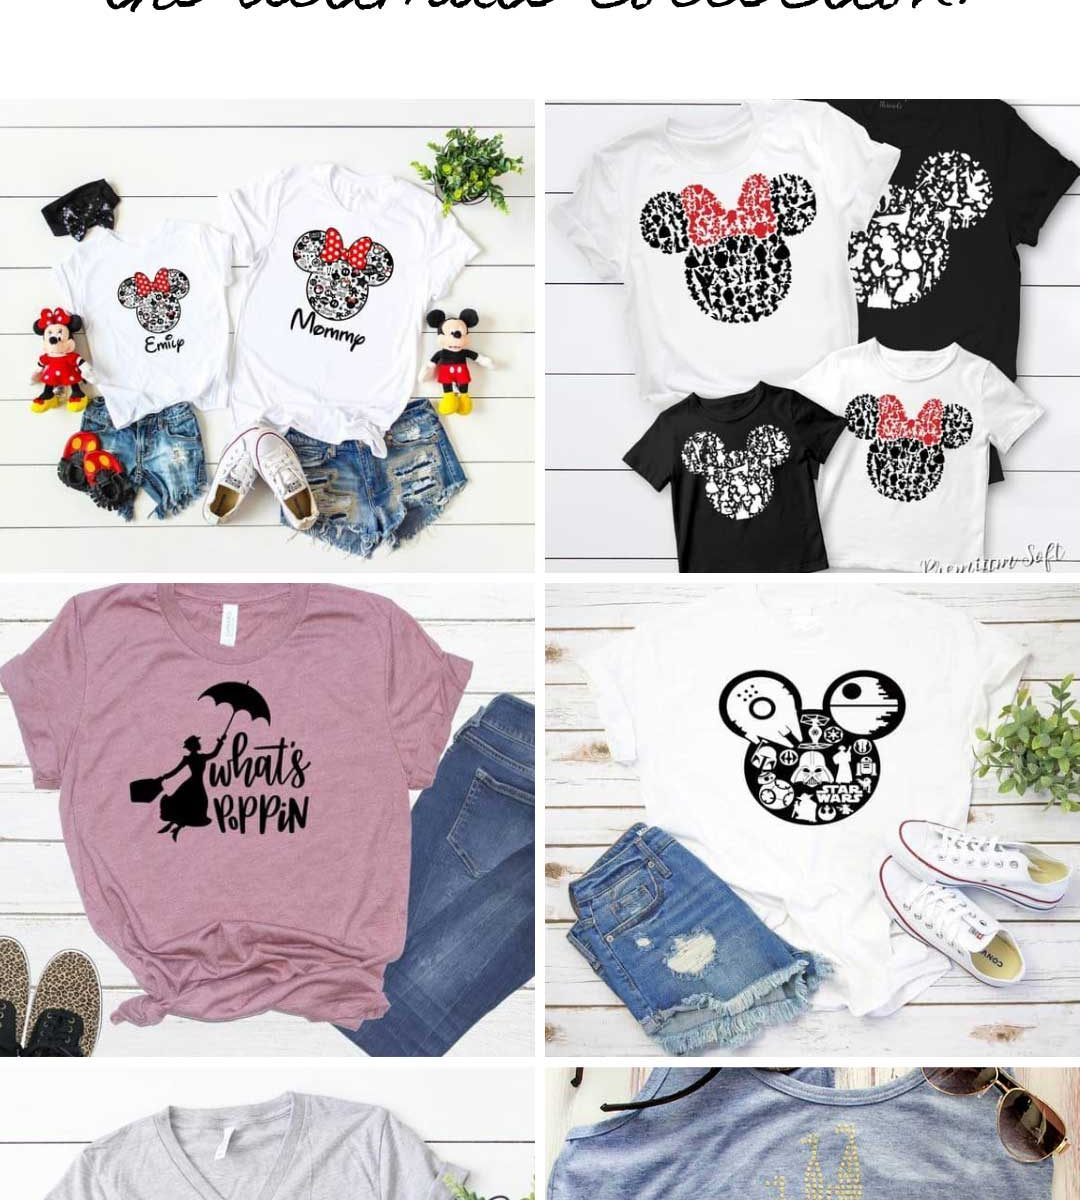 This is the ULTIMATE collection of Disney shirt ideas for your vacation. From matching family shirts to Star Wars and Christmas designs there is something here for everyone to buy or DIY!